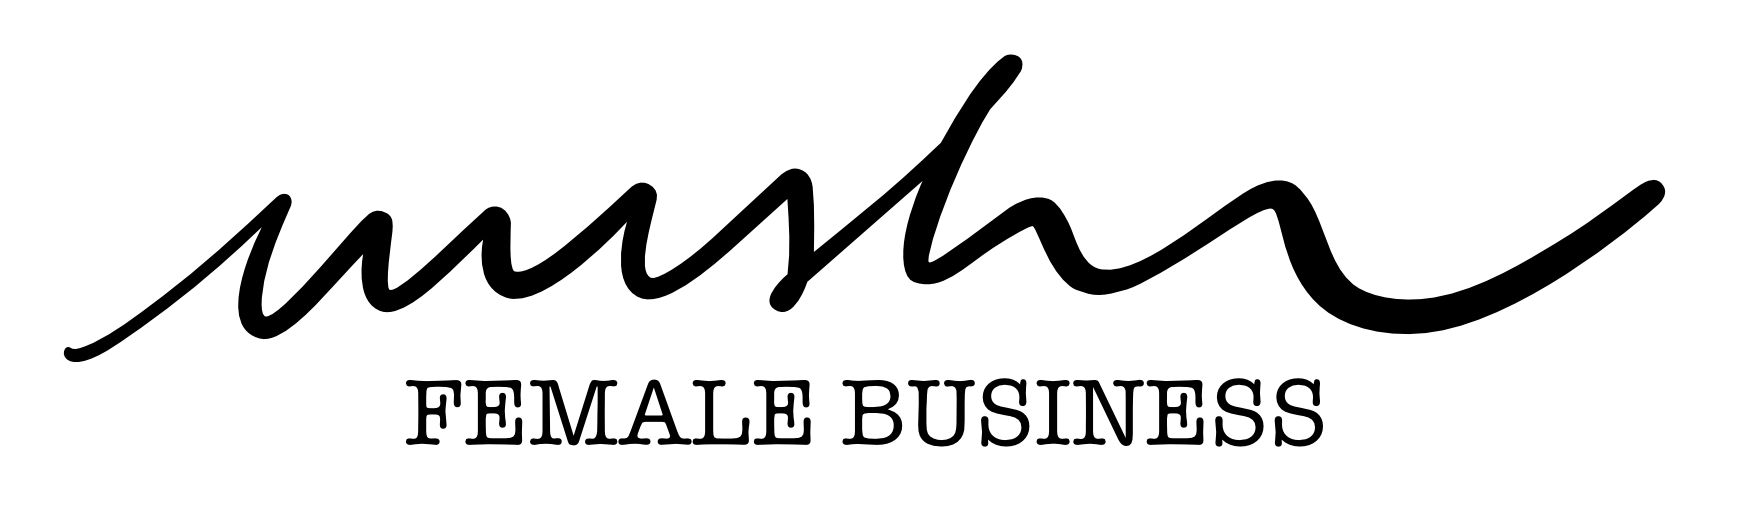 nushu Female Business